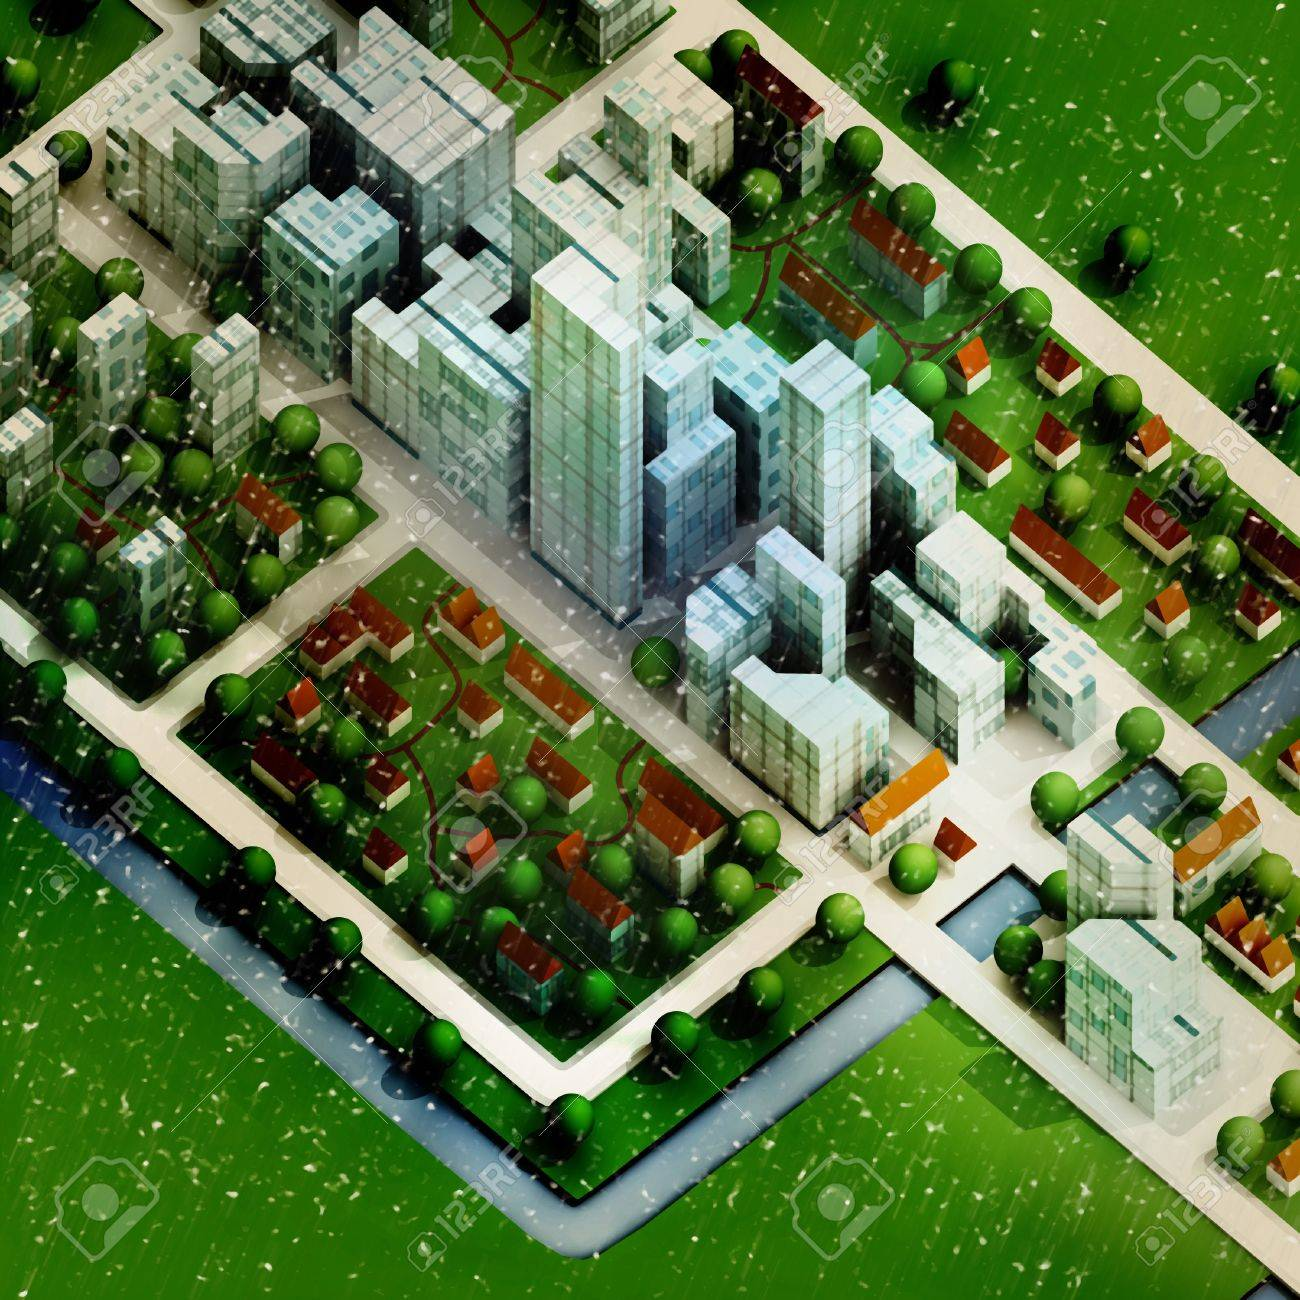 enviromantal new sustainable city winter concept development illustration perspective render illustration Stock Photo - 16157600